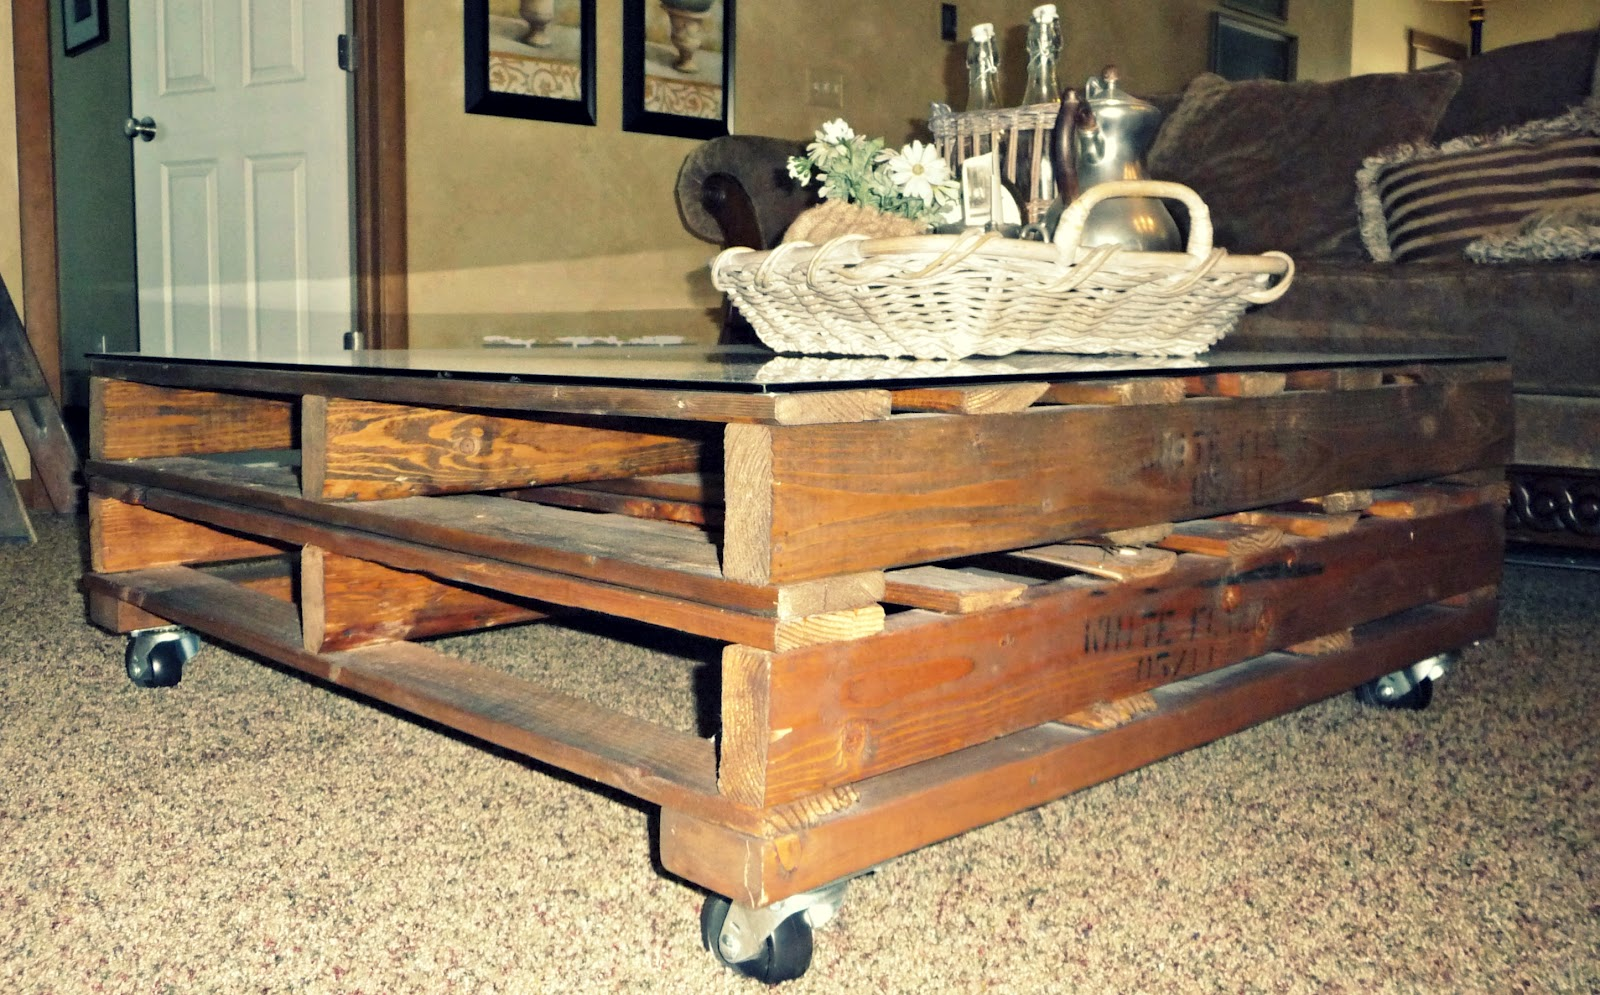 Creative Juices Decor: DIY Pallet Coffee Table Adds Character and ...